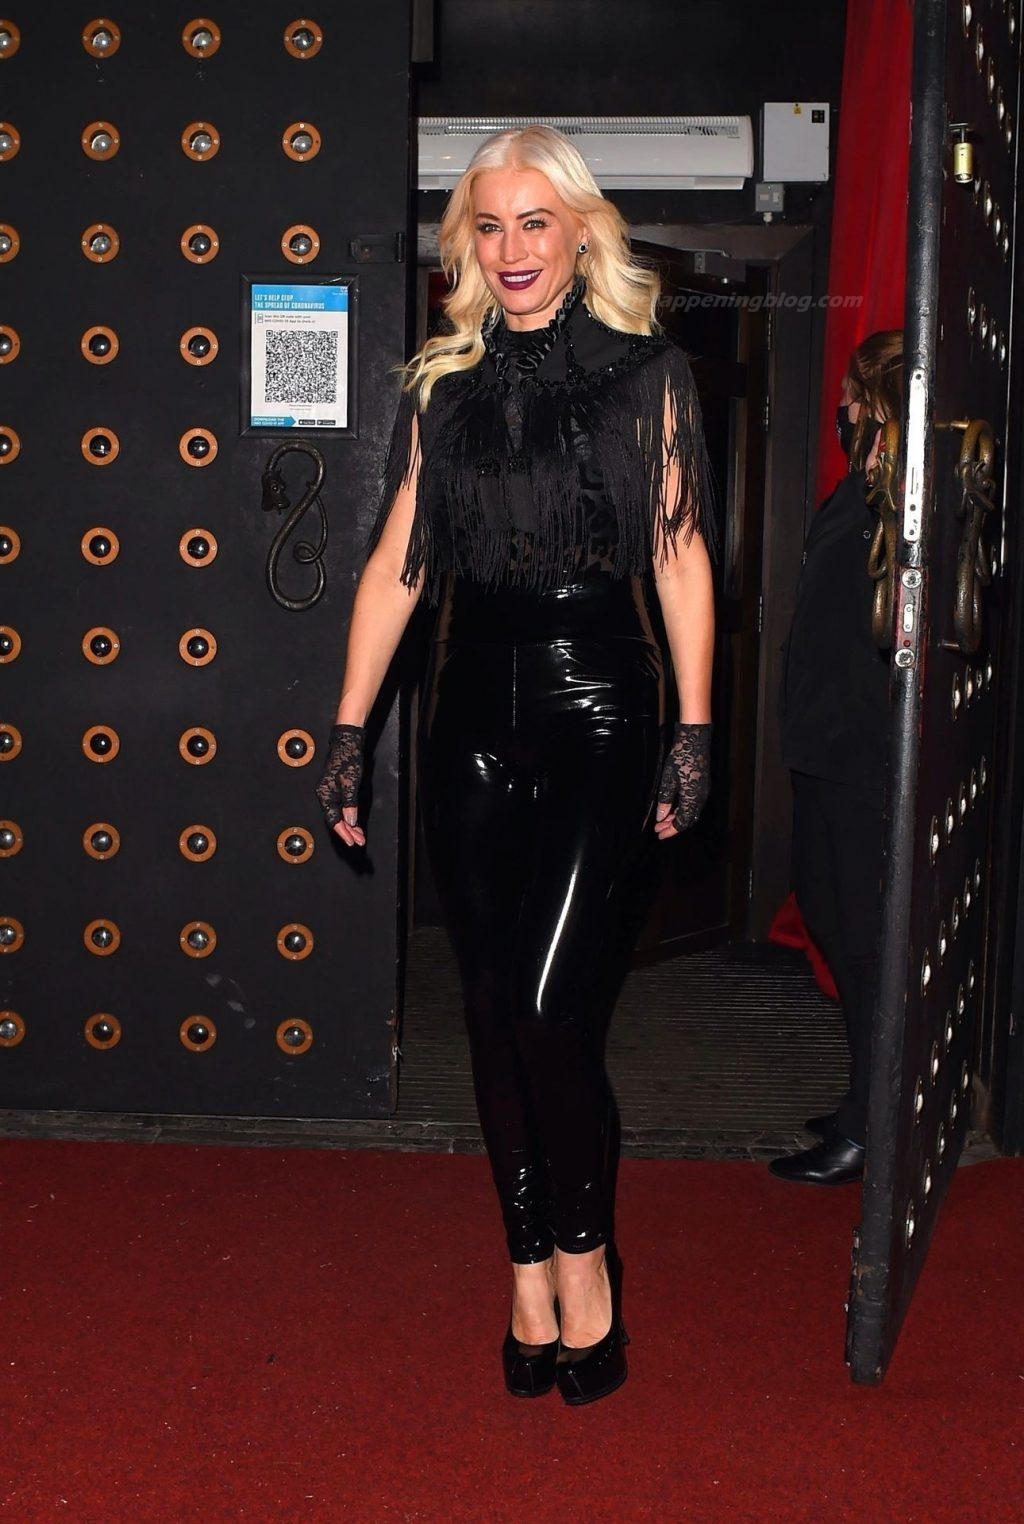 Denise Van Outen is Seen Leaving Proud For the Last Time (53 Photos)